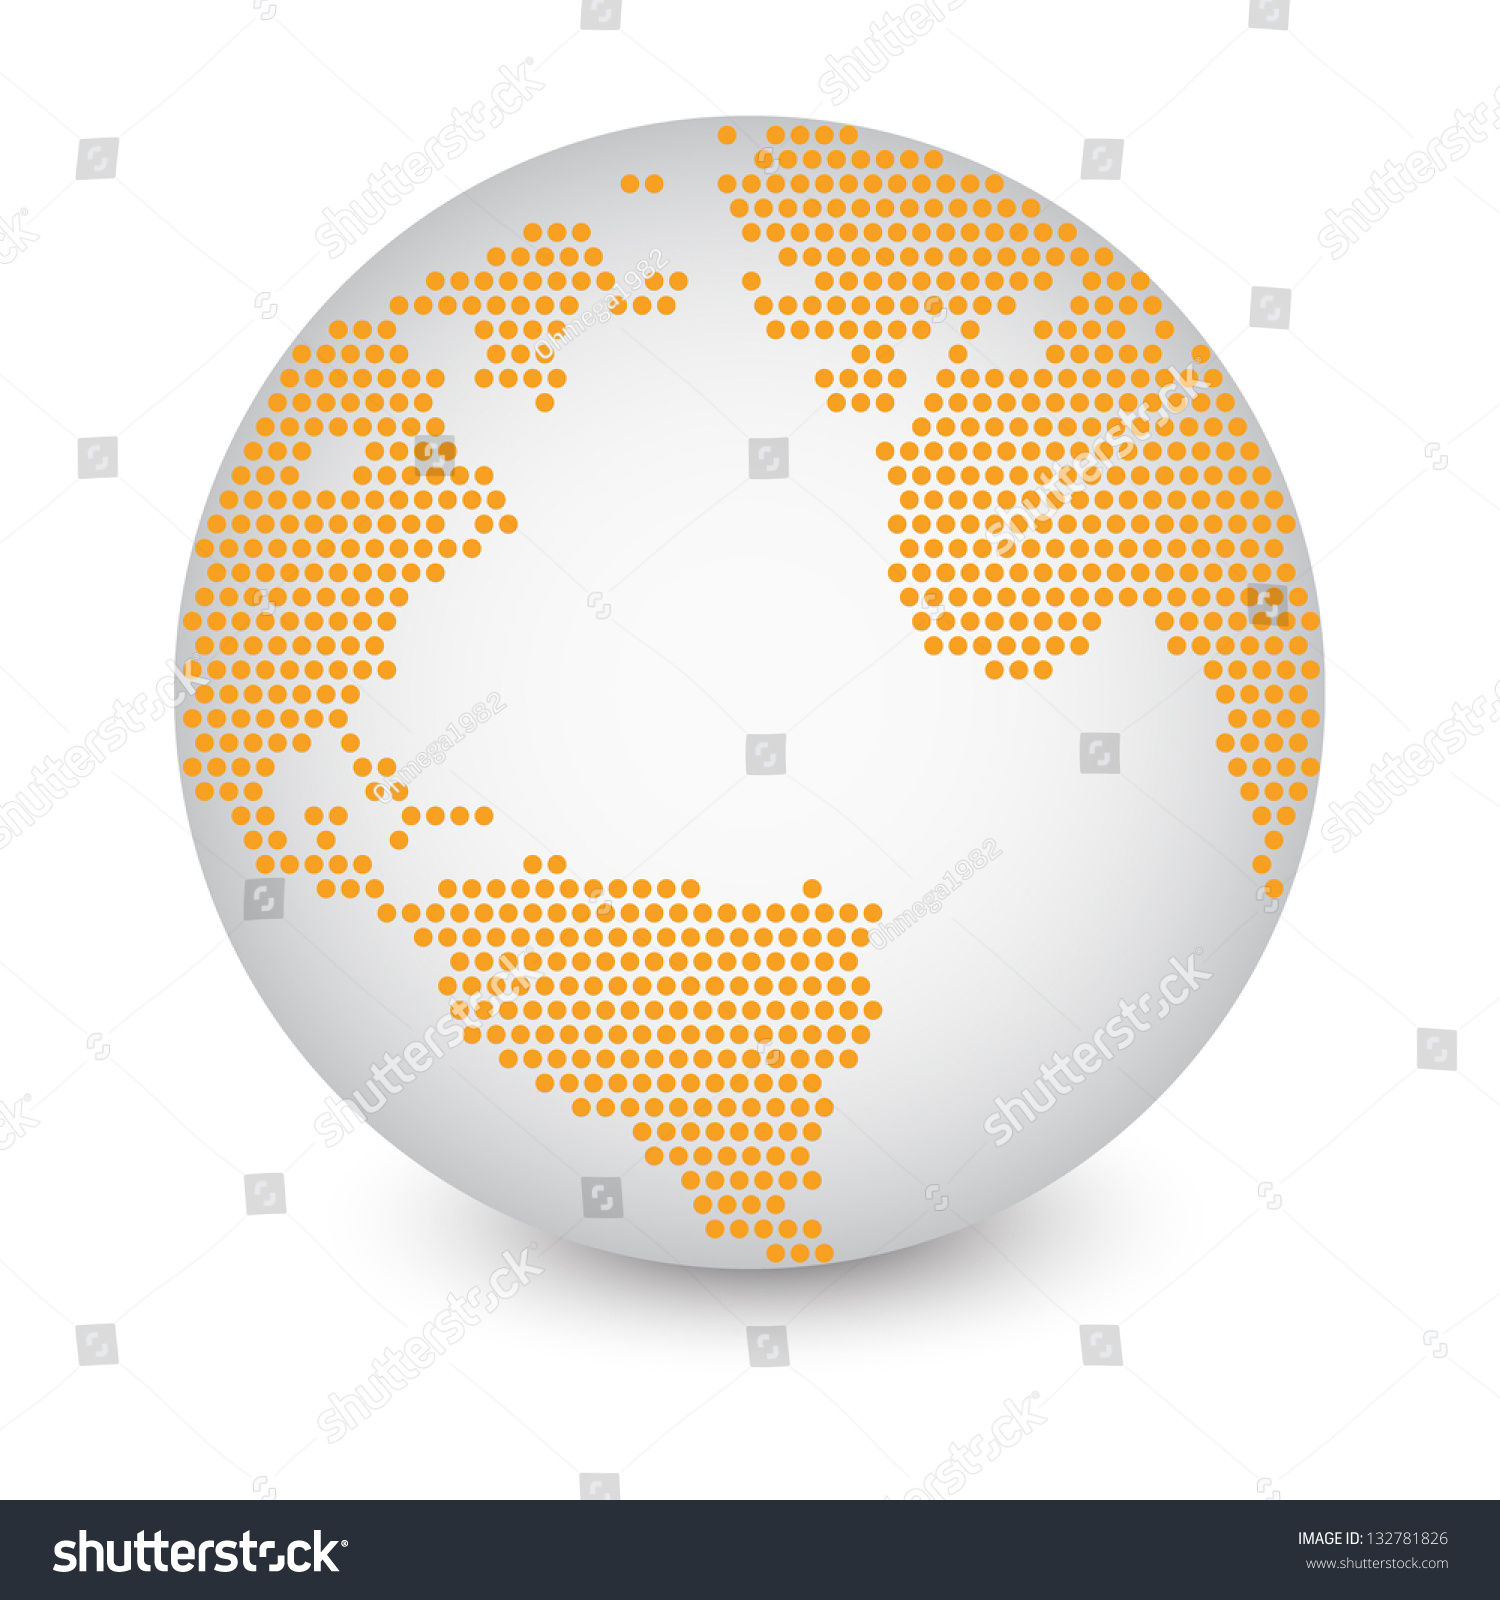 Dotted world map globe made circle stock vector 132781826 shutterstock dotted world map globe made of circle shapes vector illustration eps 10 publicscrutiny Gallery